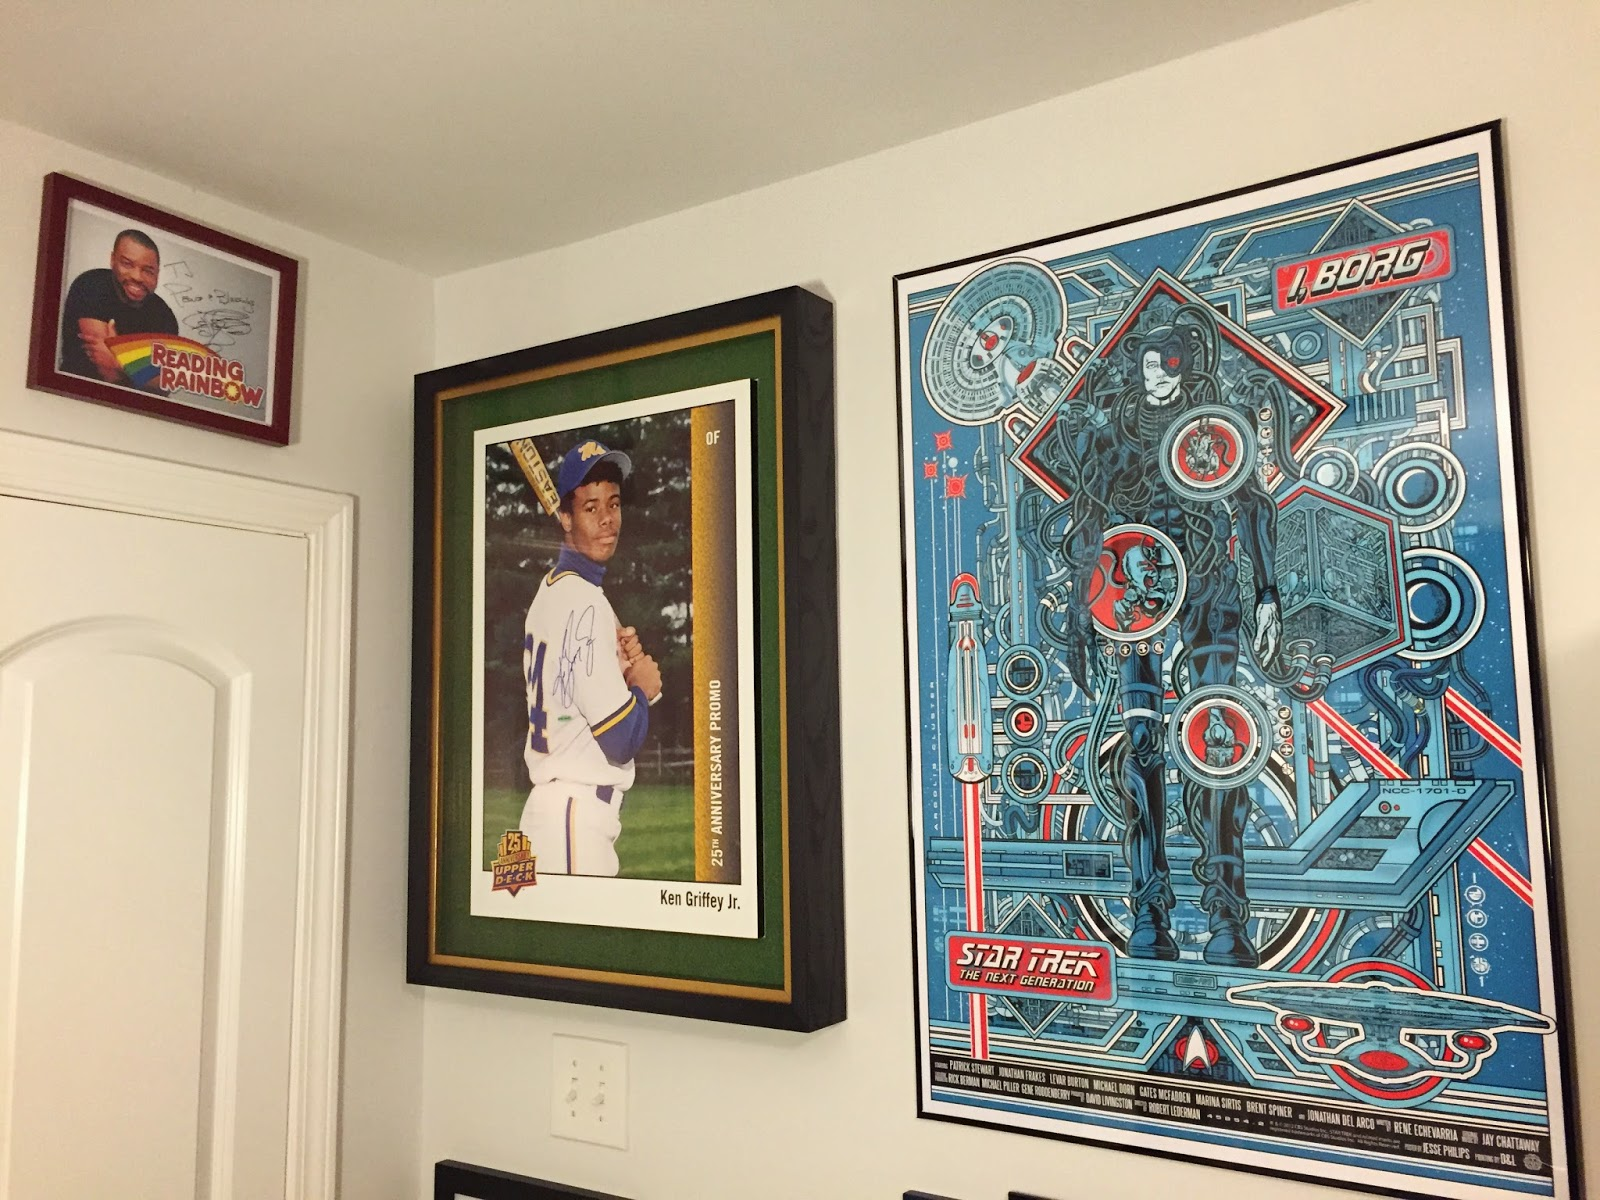 That Star Trek Poster Is Going Away Soon Though To Make Room For Something Else Completely Awesome And Griffey Related